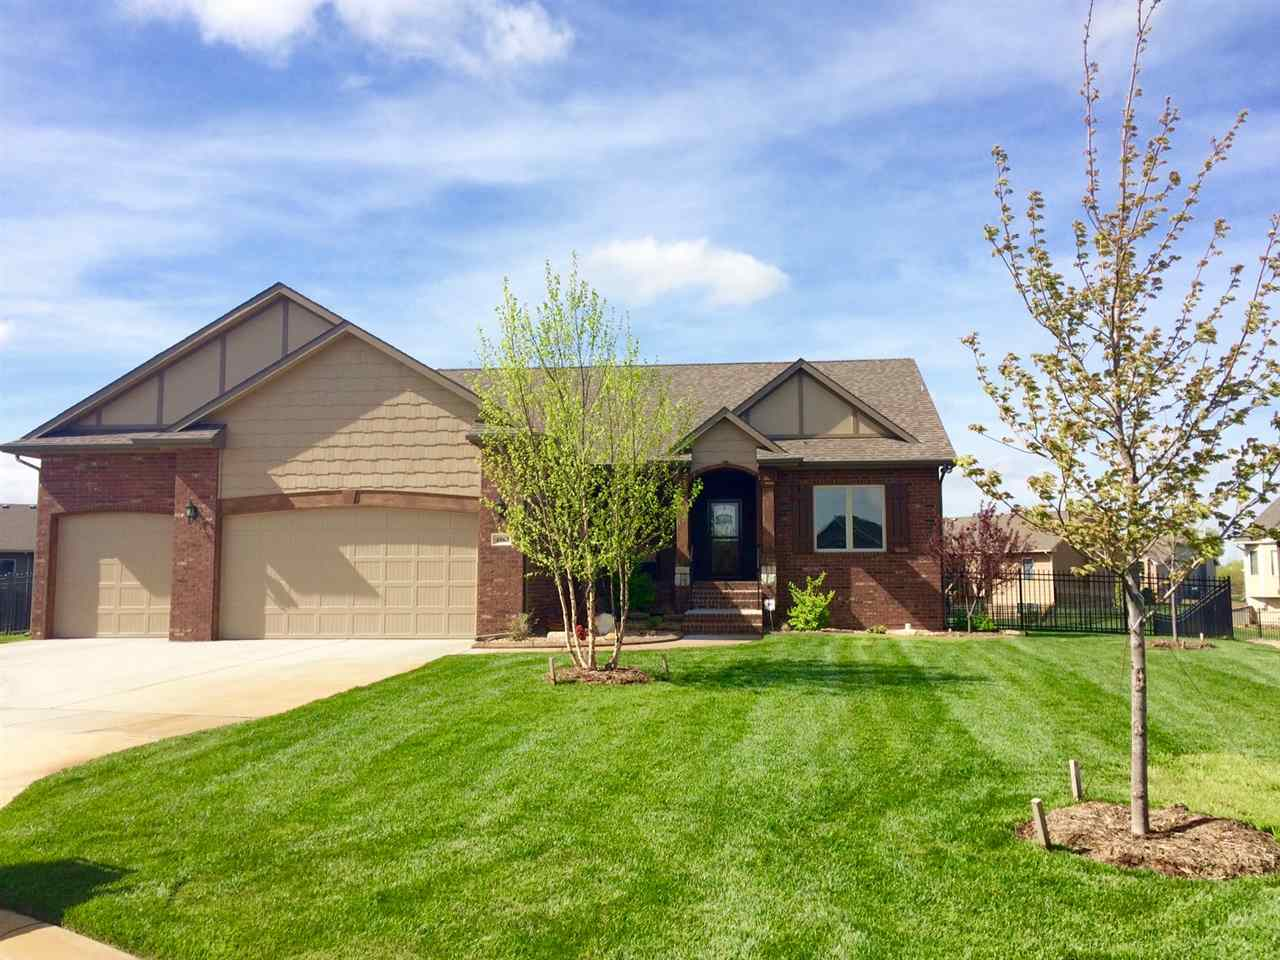 4862 N Emerald Ct, Maize, KS 67101